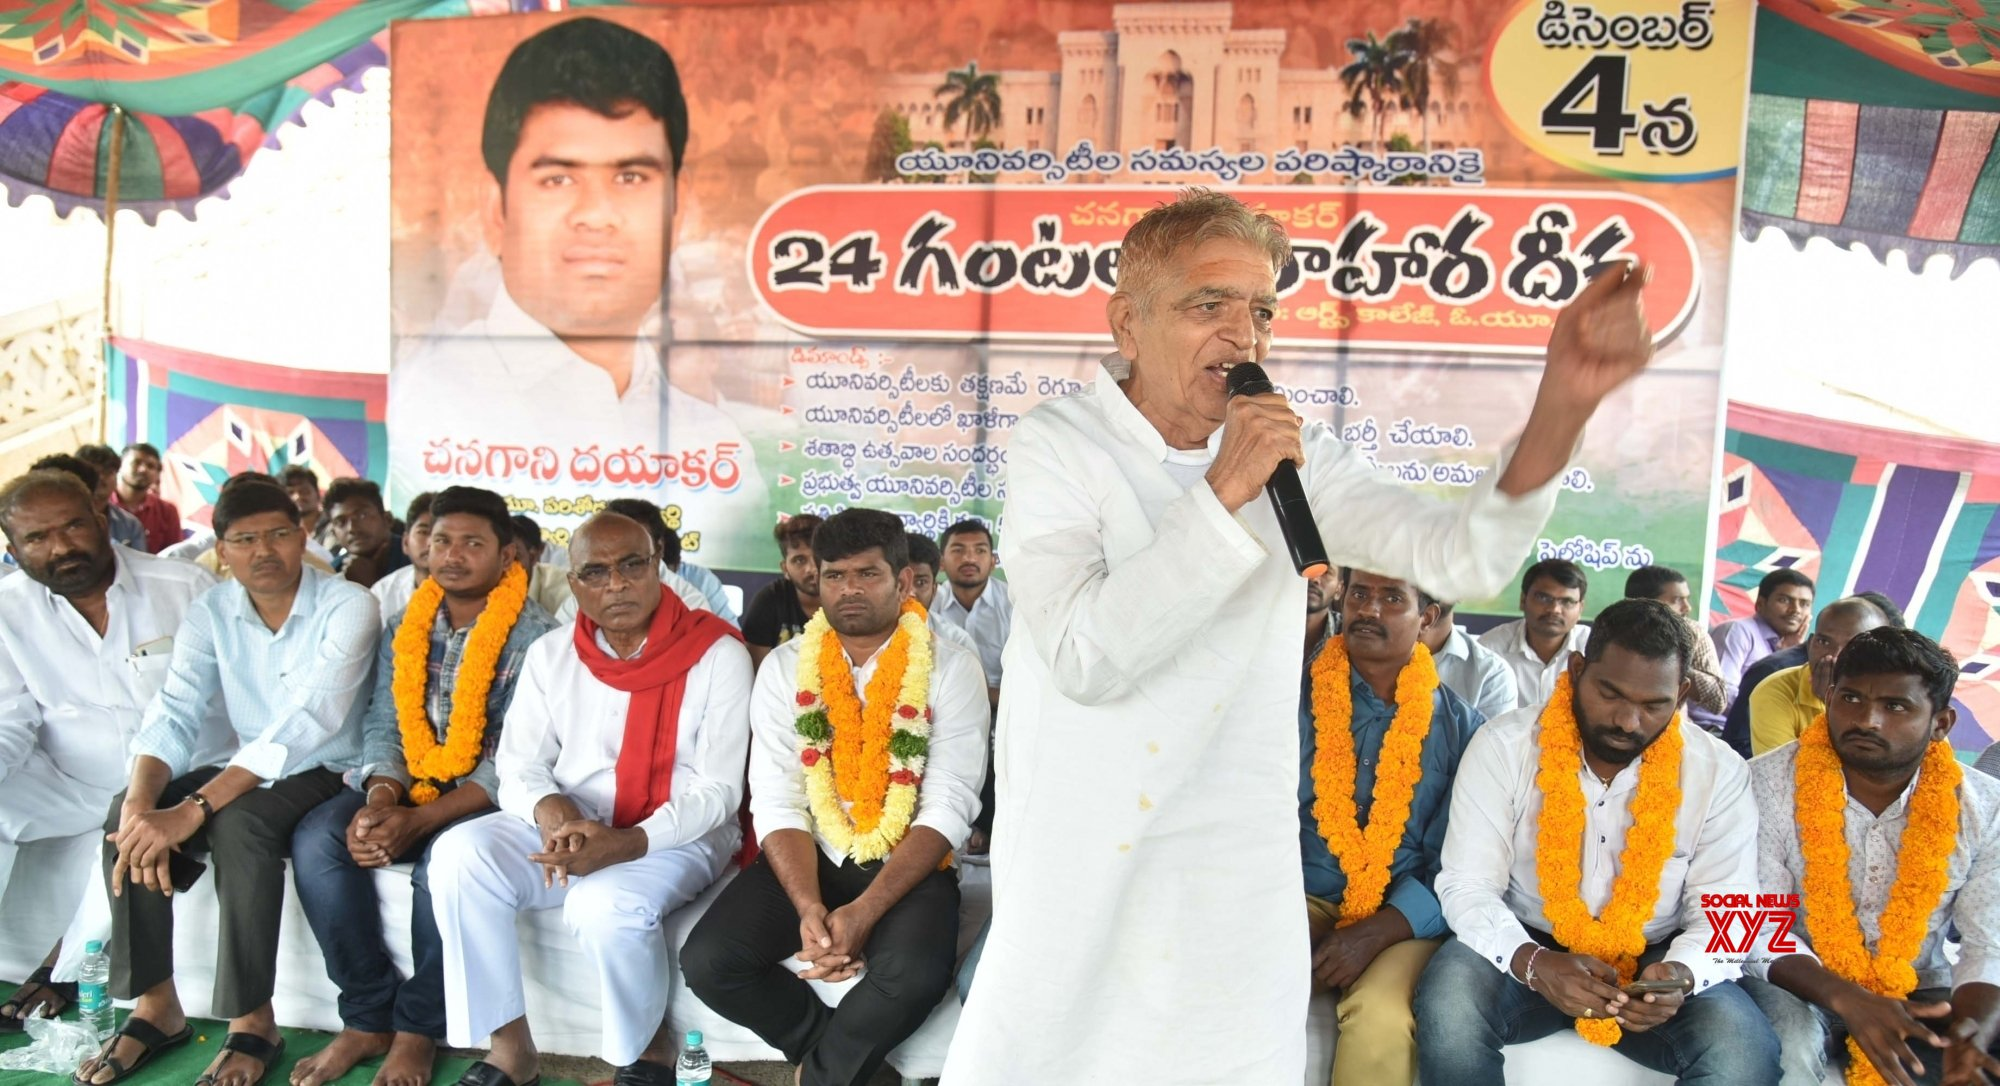 Hyderabad: OU Students' JAC leader on hunger strike #Gallery